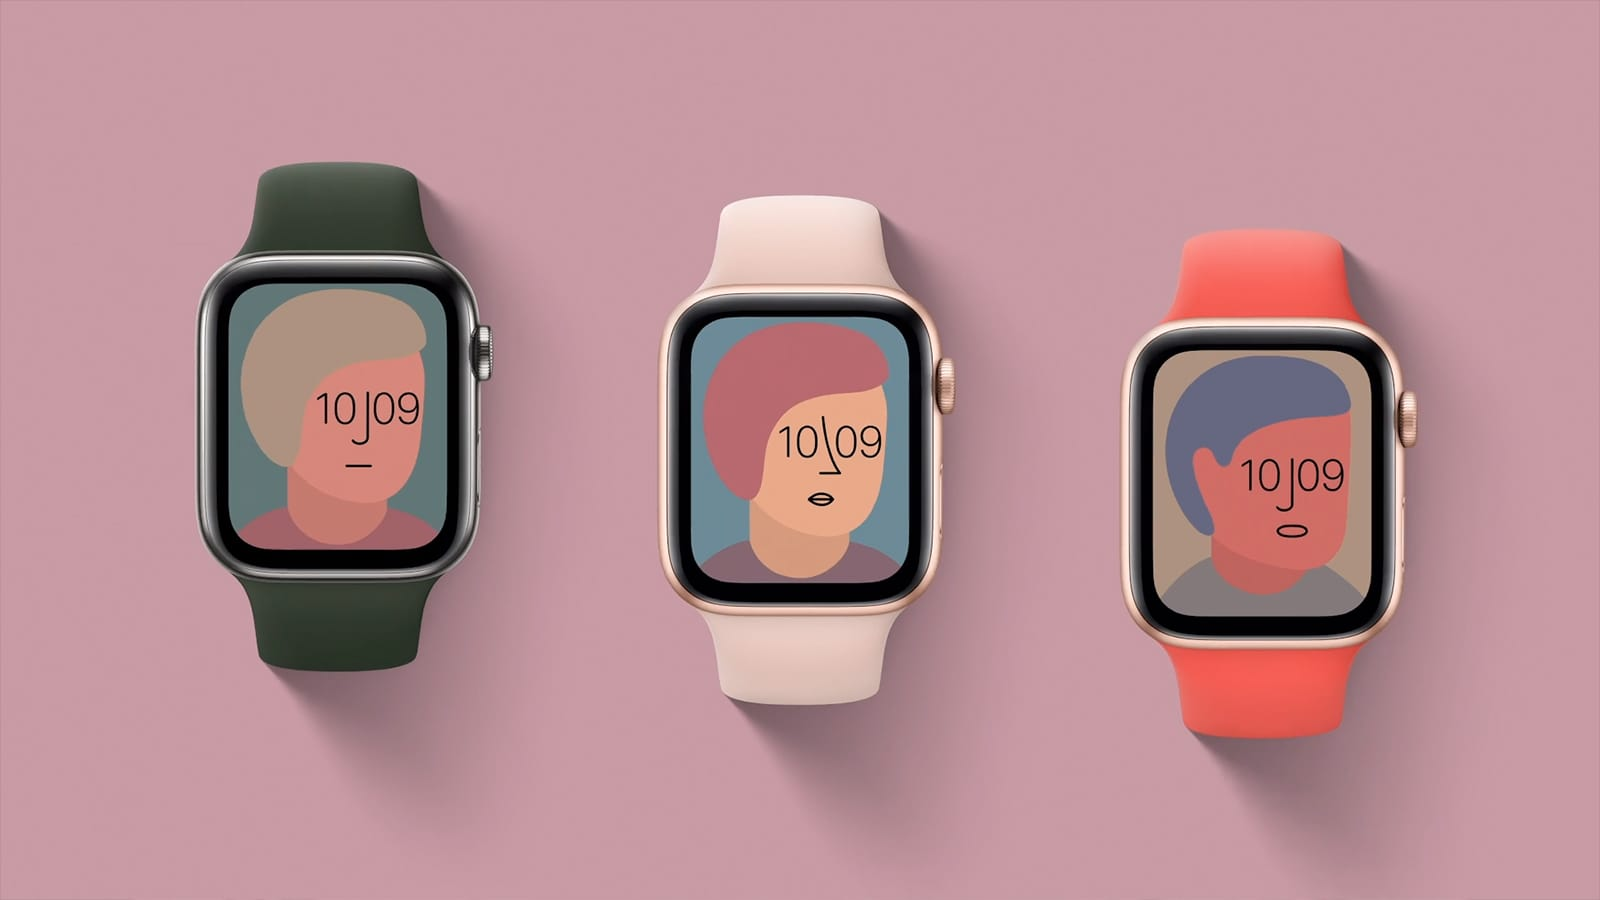 New Apple Watch Series 6 Faces